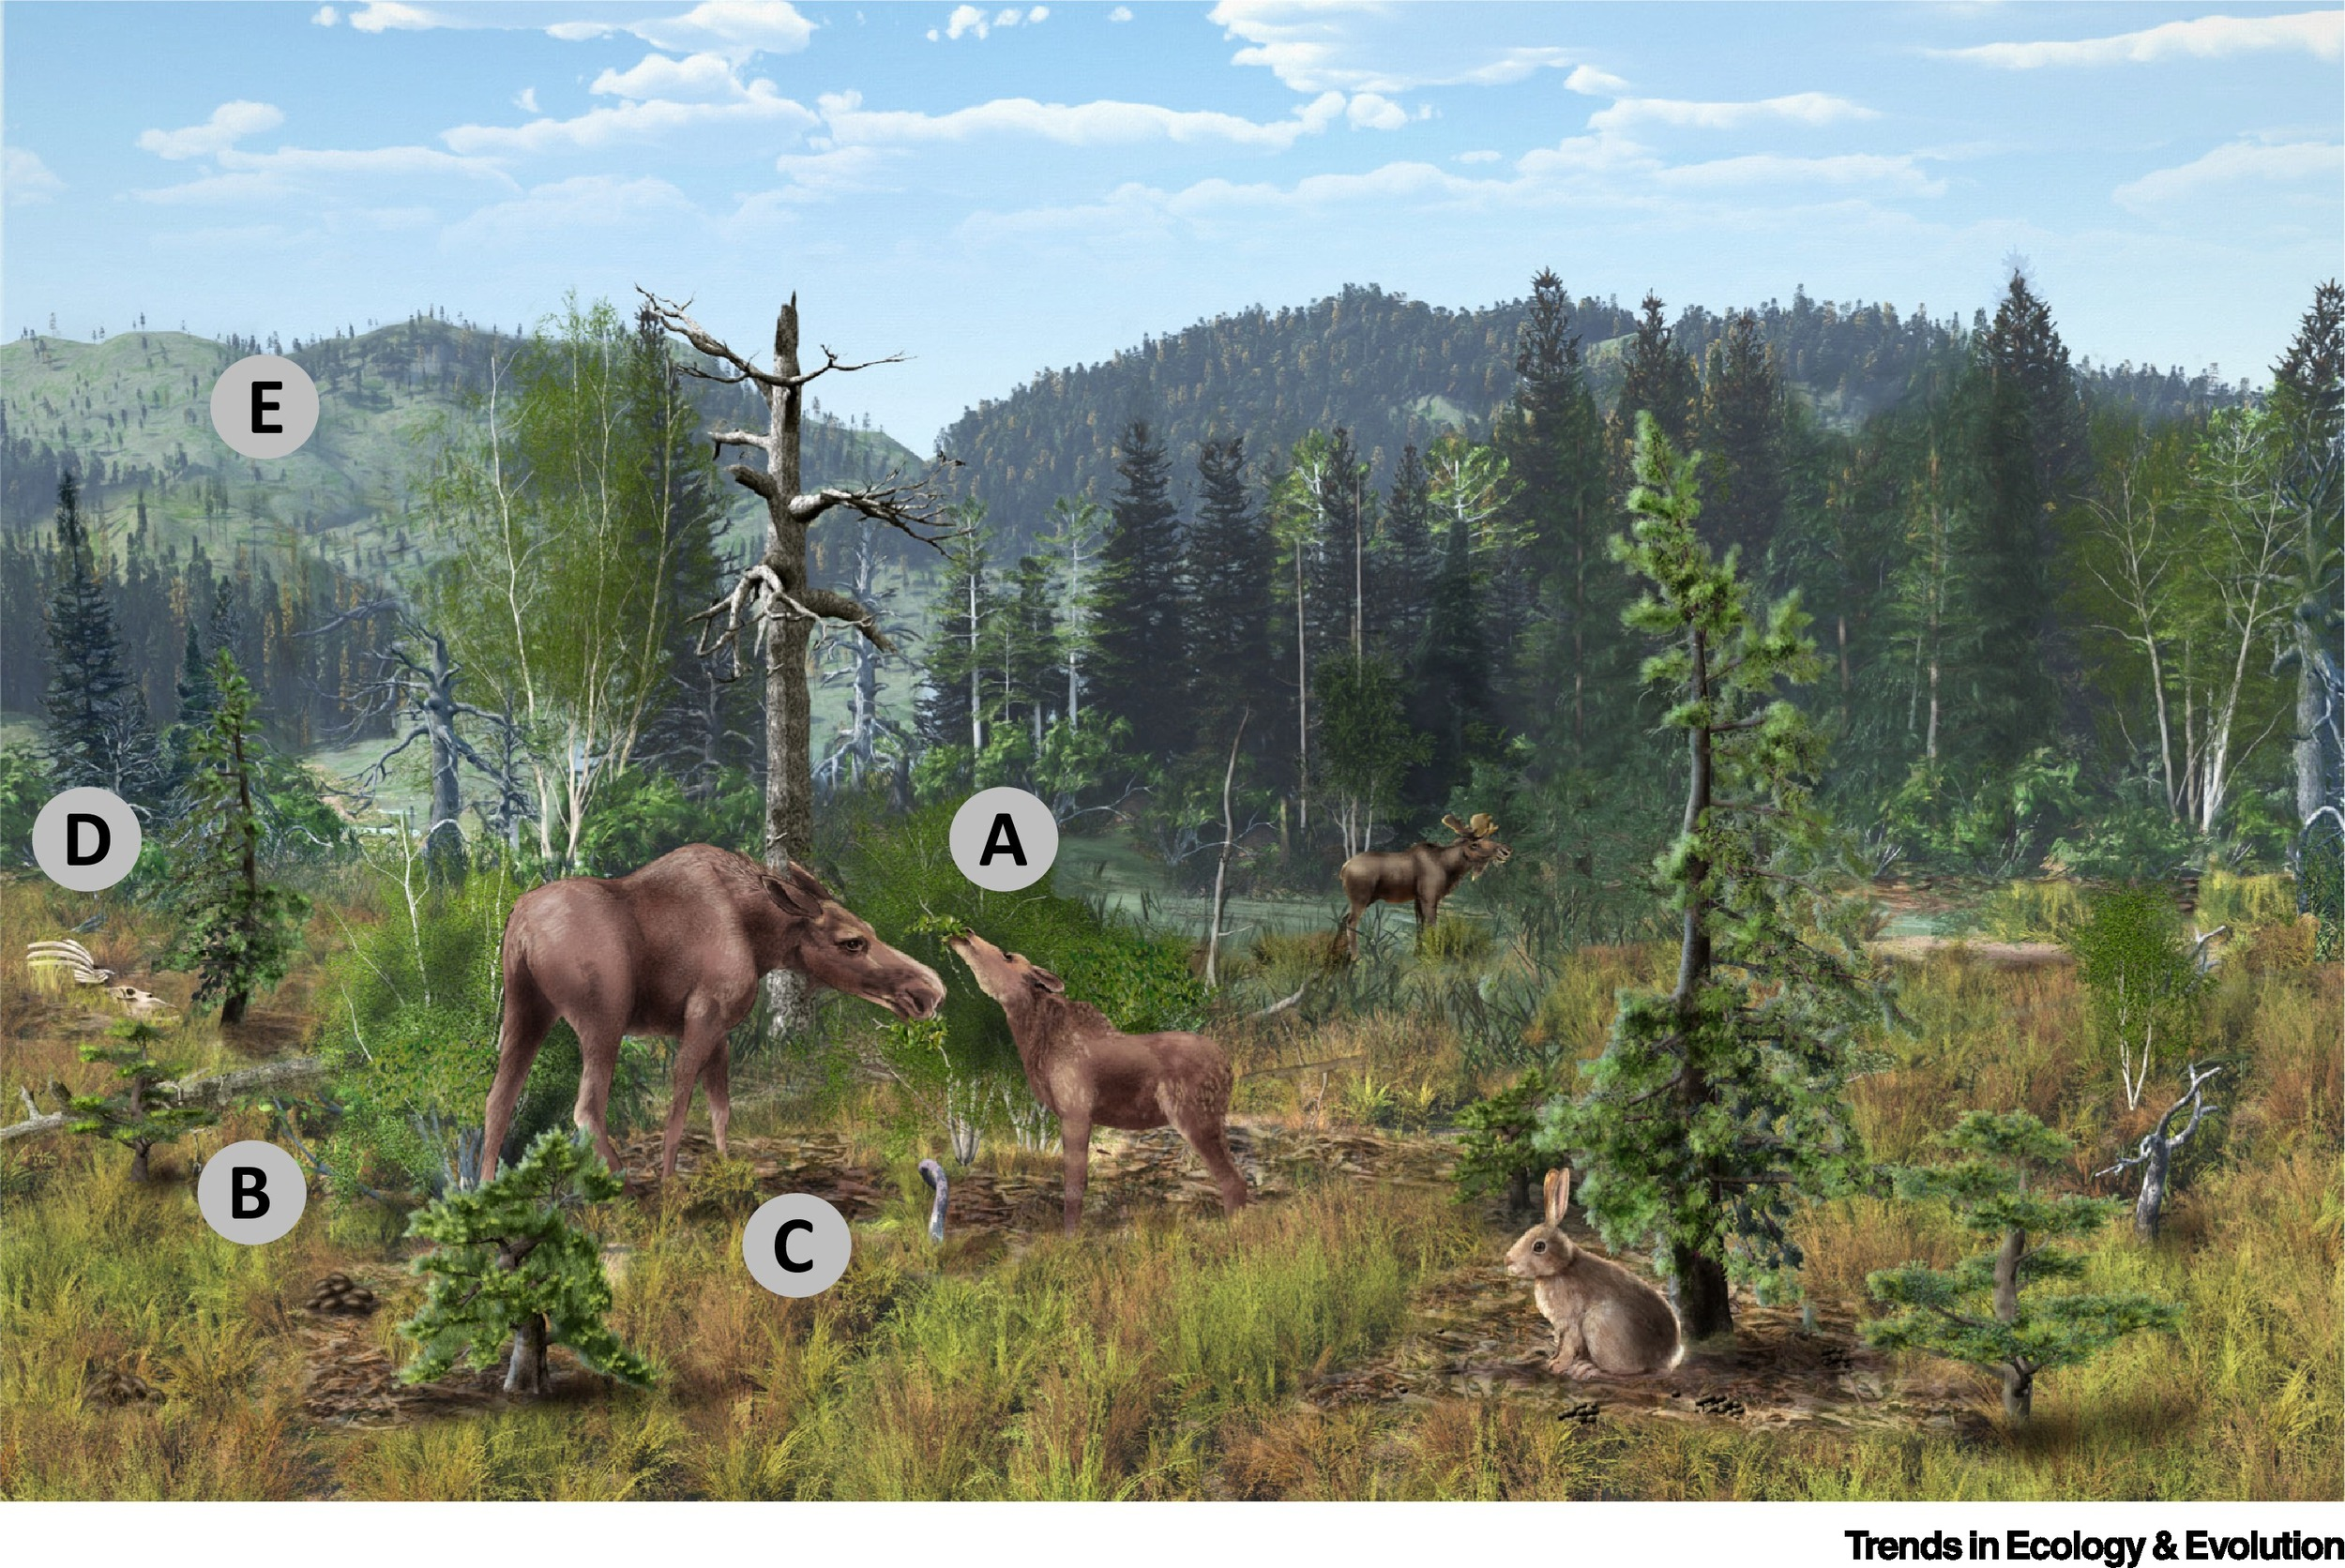 The tick will drink the blood of the lion, and possibly give it disease. Herbivore Impacts On Carbon Cycling In Boreal Forests Trends In Ecology Evolution